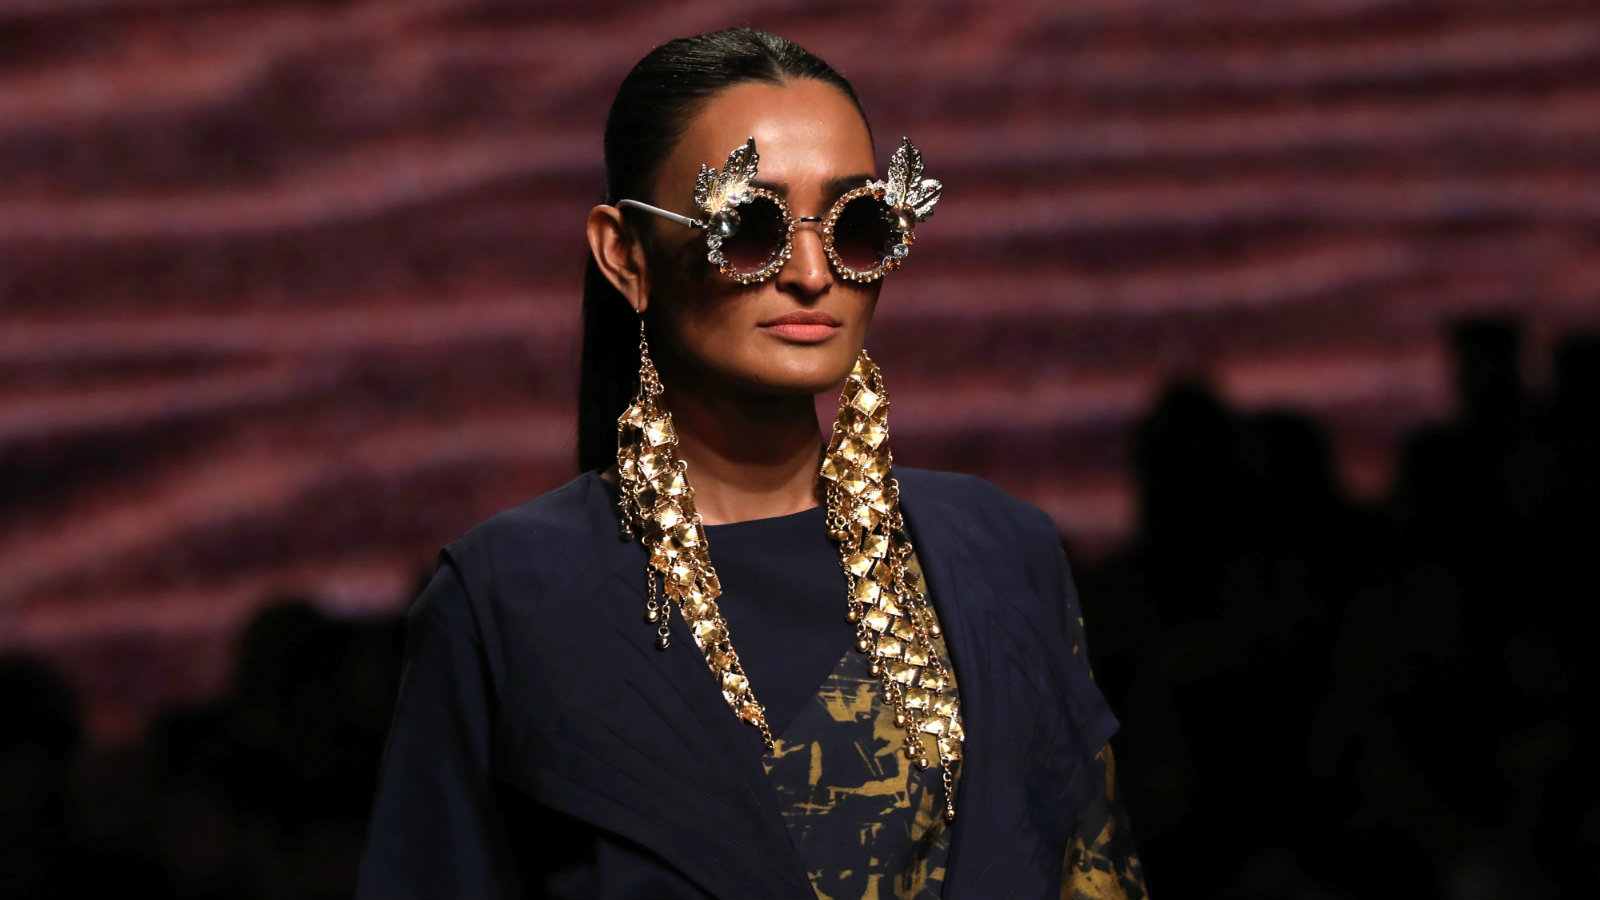 A model presents a creation by Indian designer Eshaa Amiin during the Amazon India Fashion Week Fall/Winter 2018 in New Delhi, India, 16 March 2018. The event runs from 14 to 18 March.